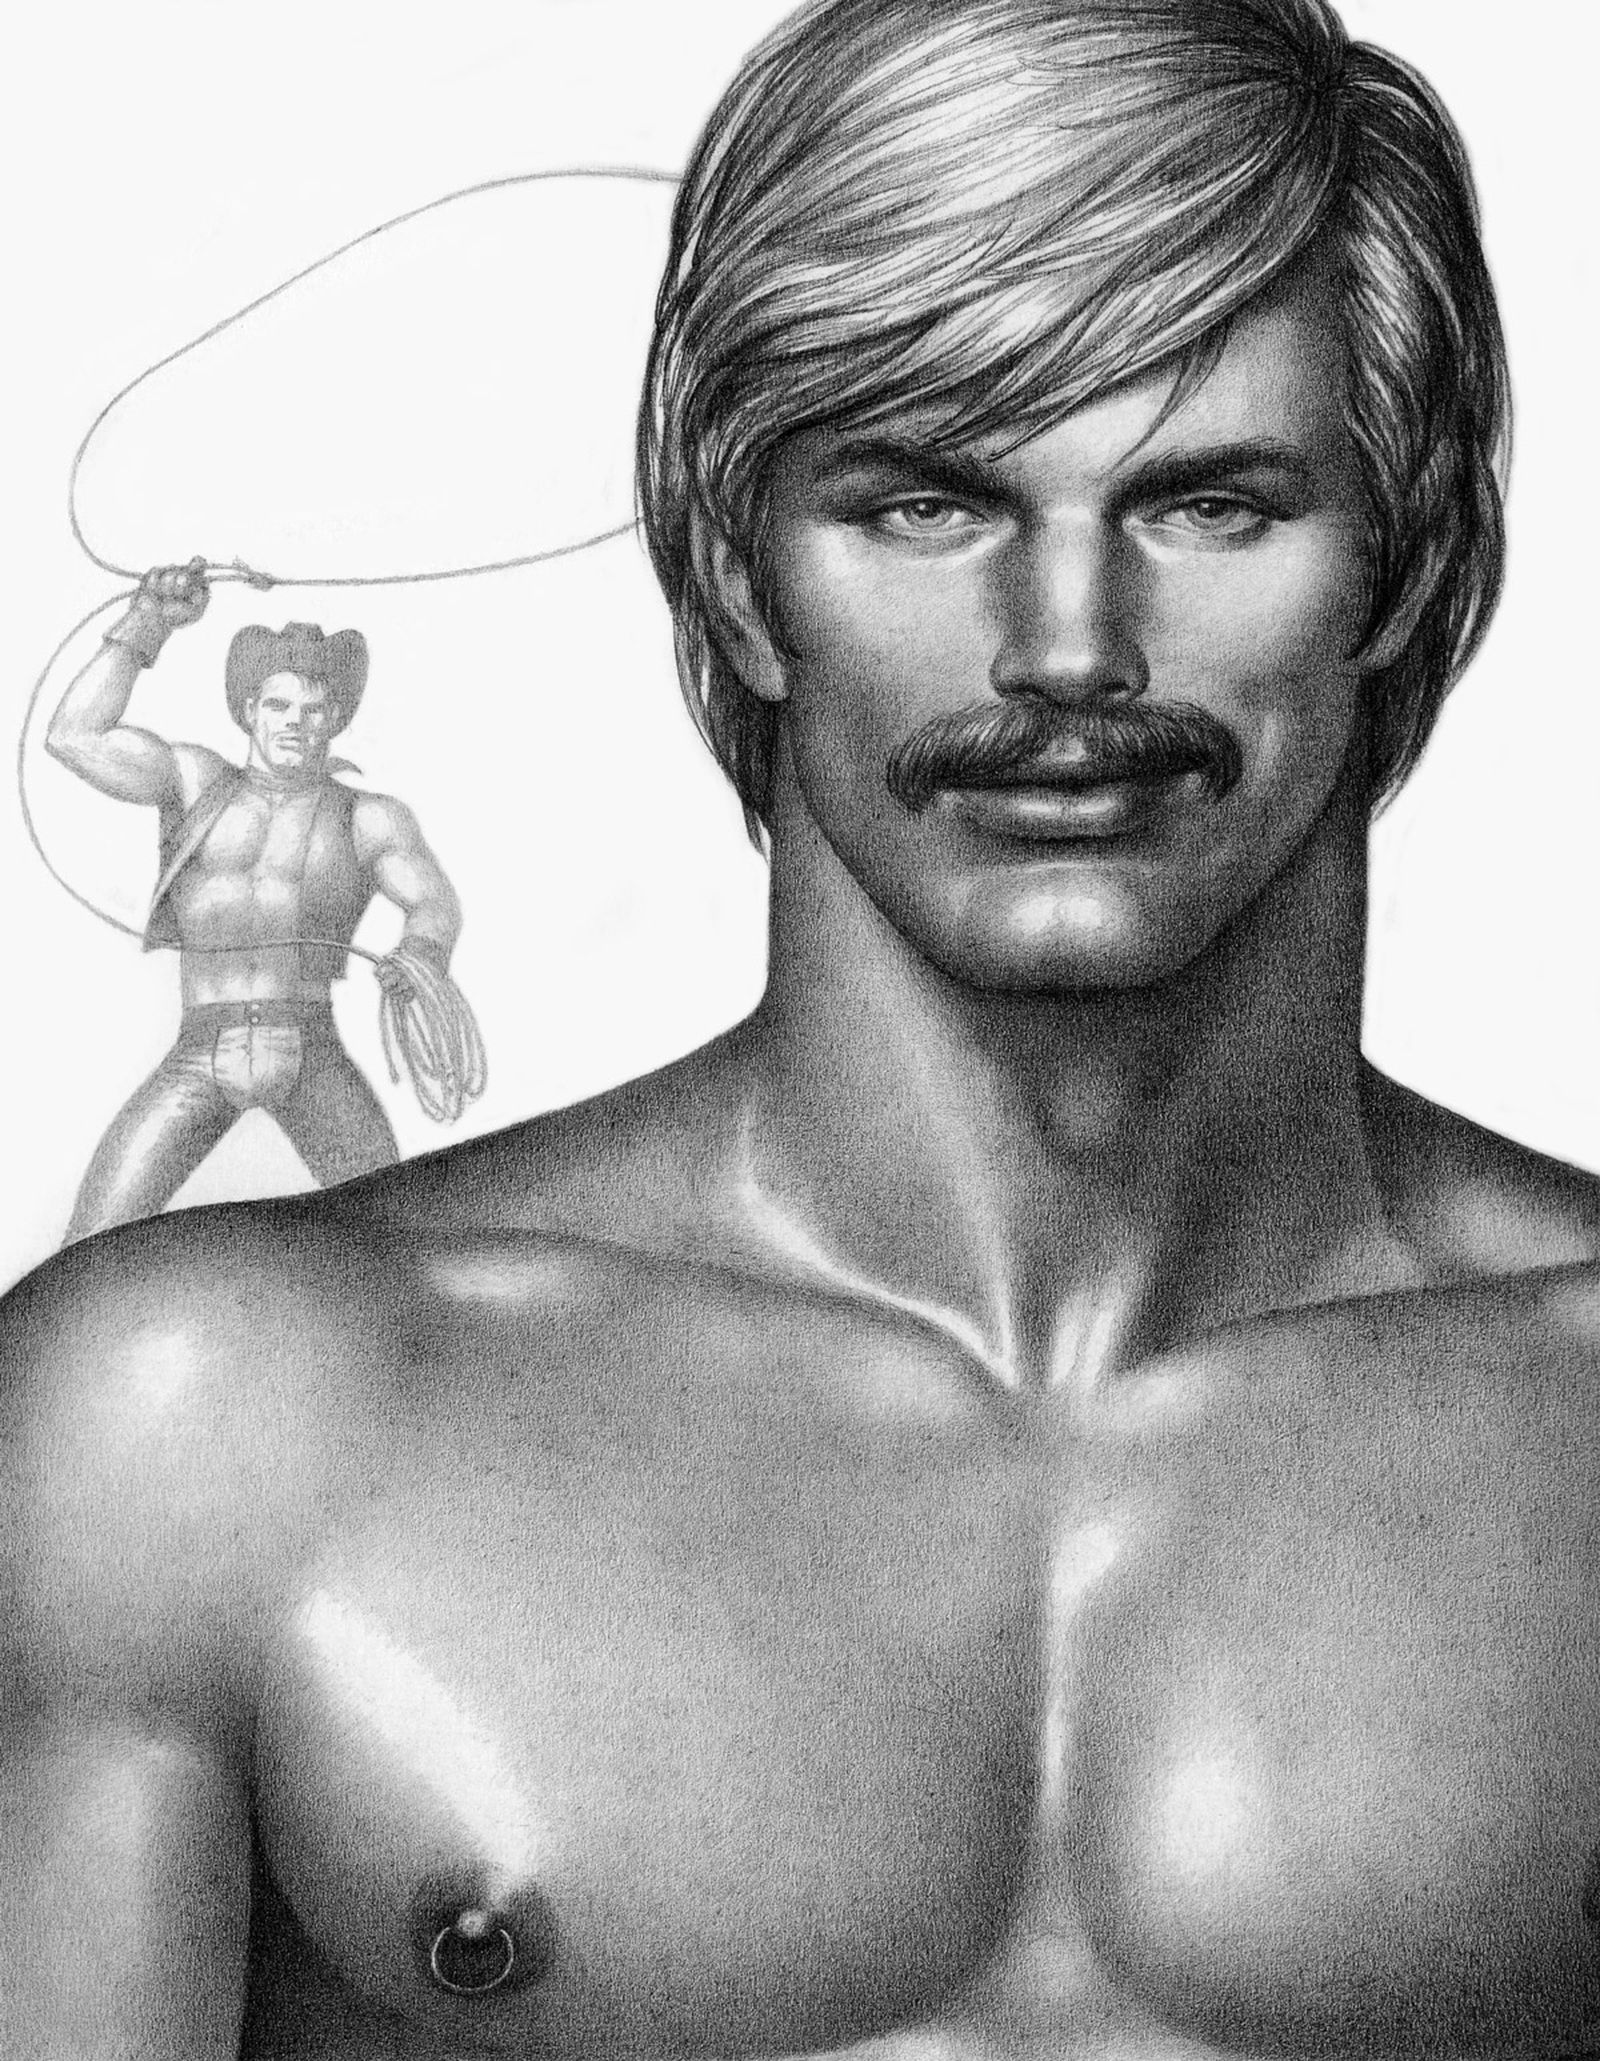 tom-of-finland-interview-03